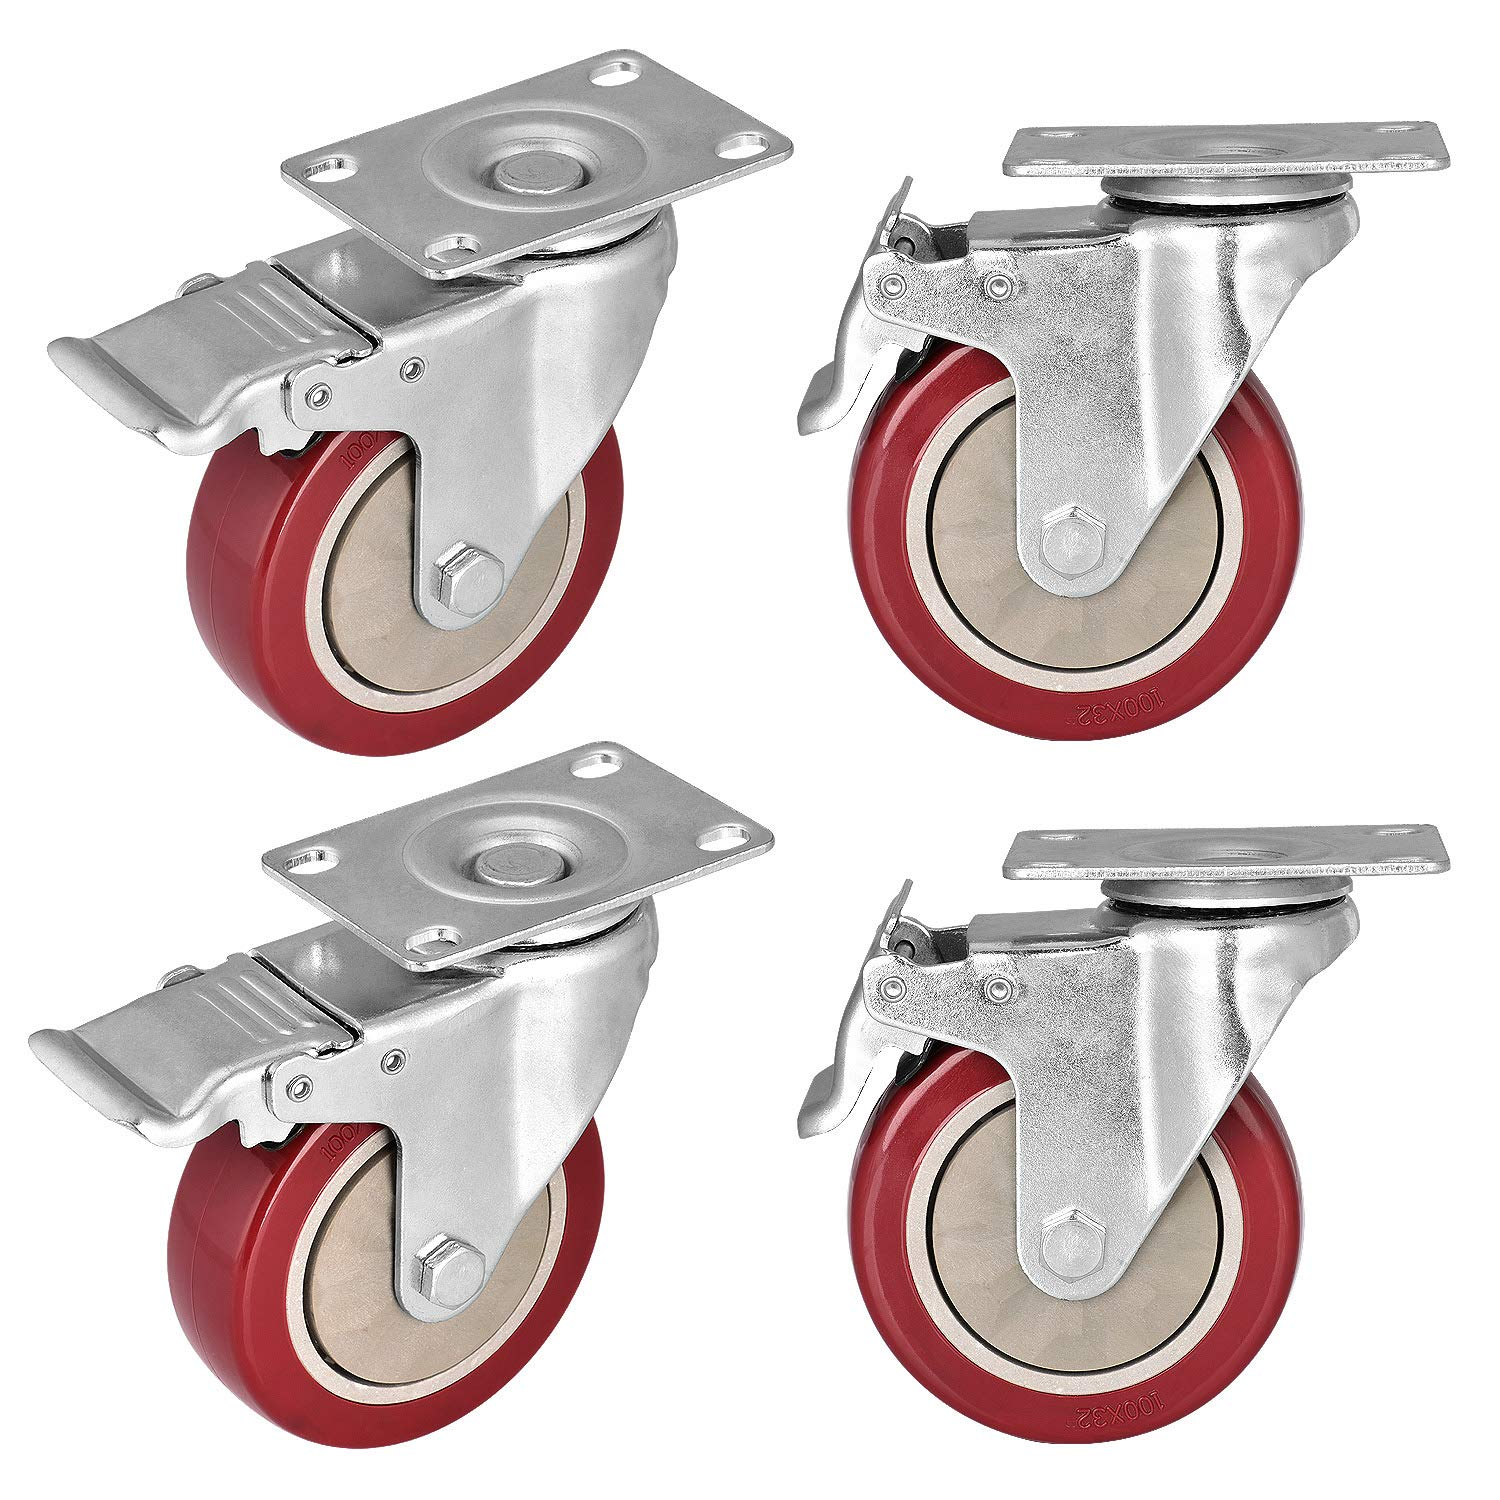 Moogiitools 4'' Swivel Rubber Caster Wheels with Safety Dual Locking Heavy Duty 1200lbs Set of 4 with Brake